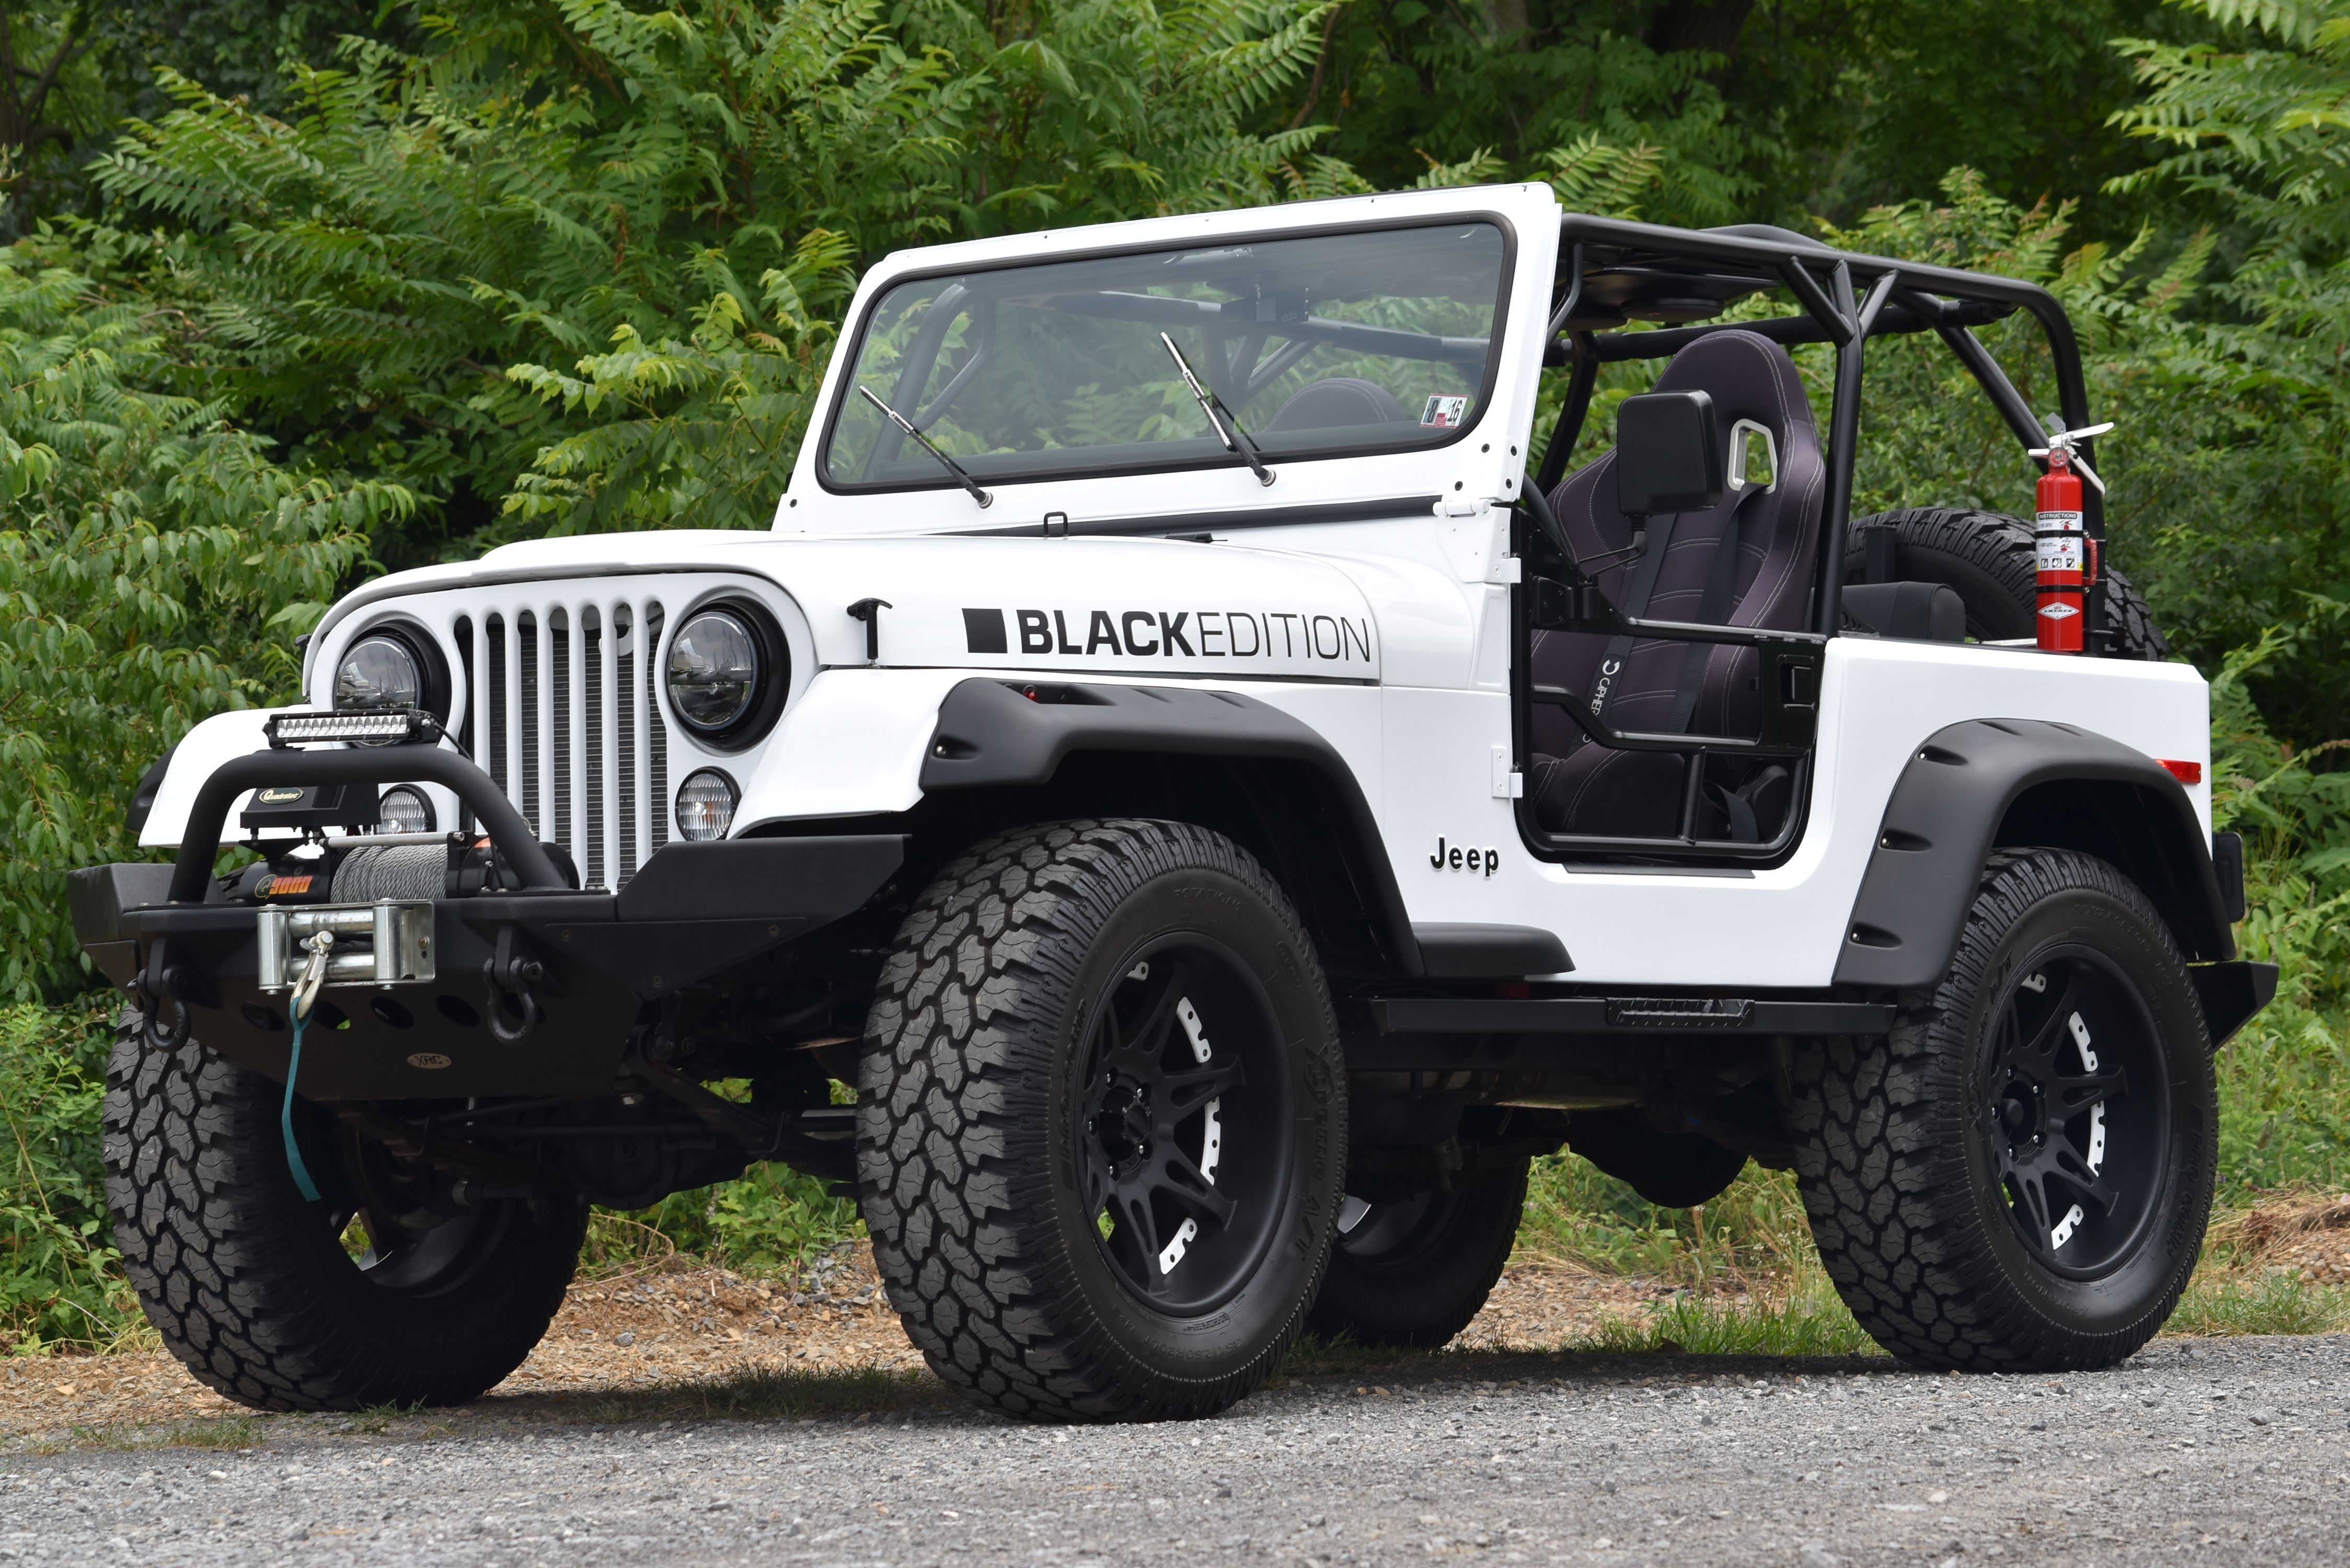 medium resolution of this beautifully restored black edition 1980 jeep cj 7 has been a complete frame off build and features a 347 c i ford v8 motor fully custom roll cage